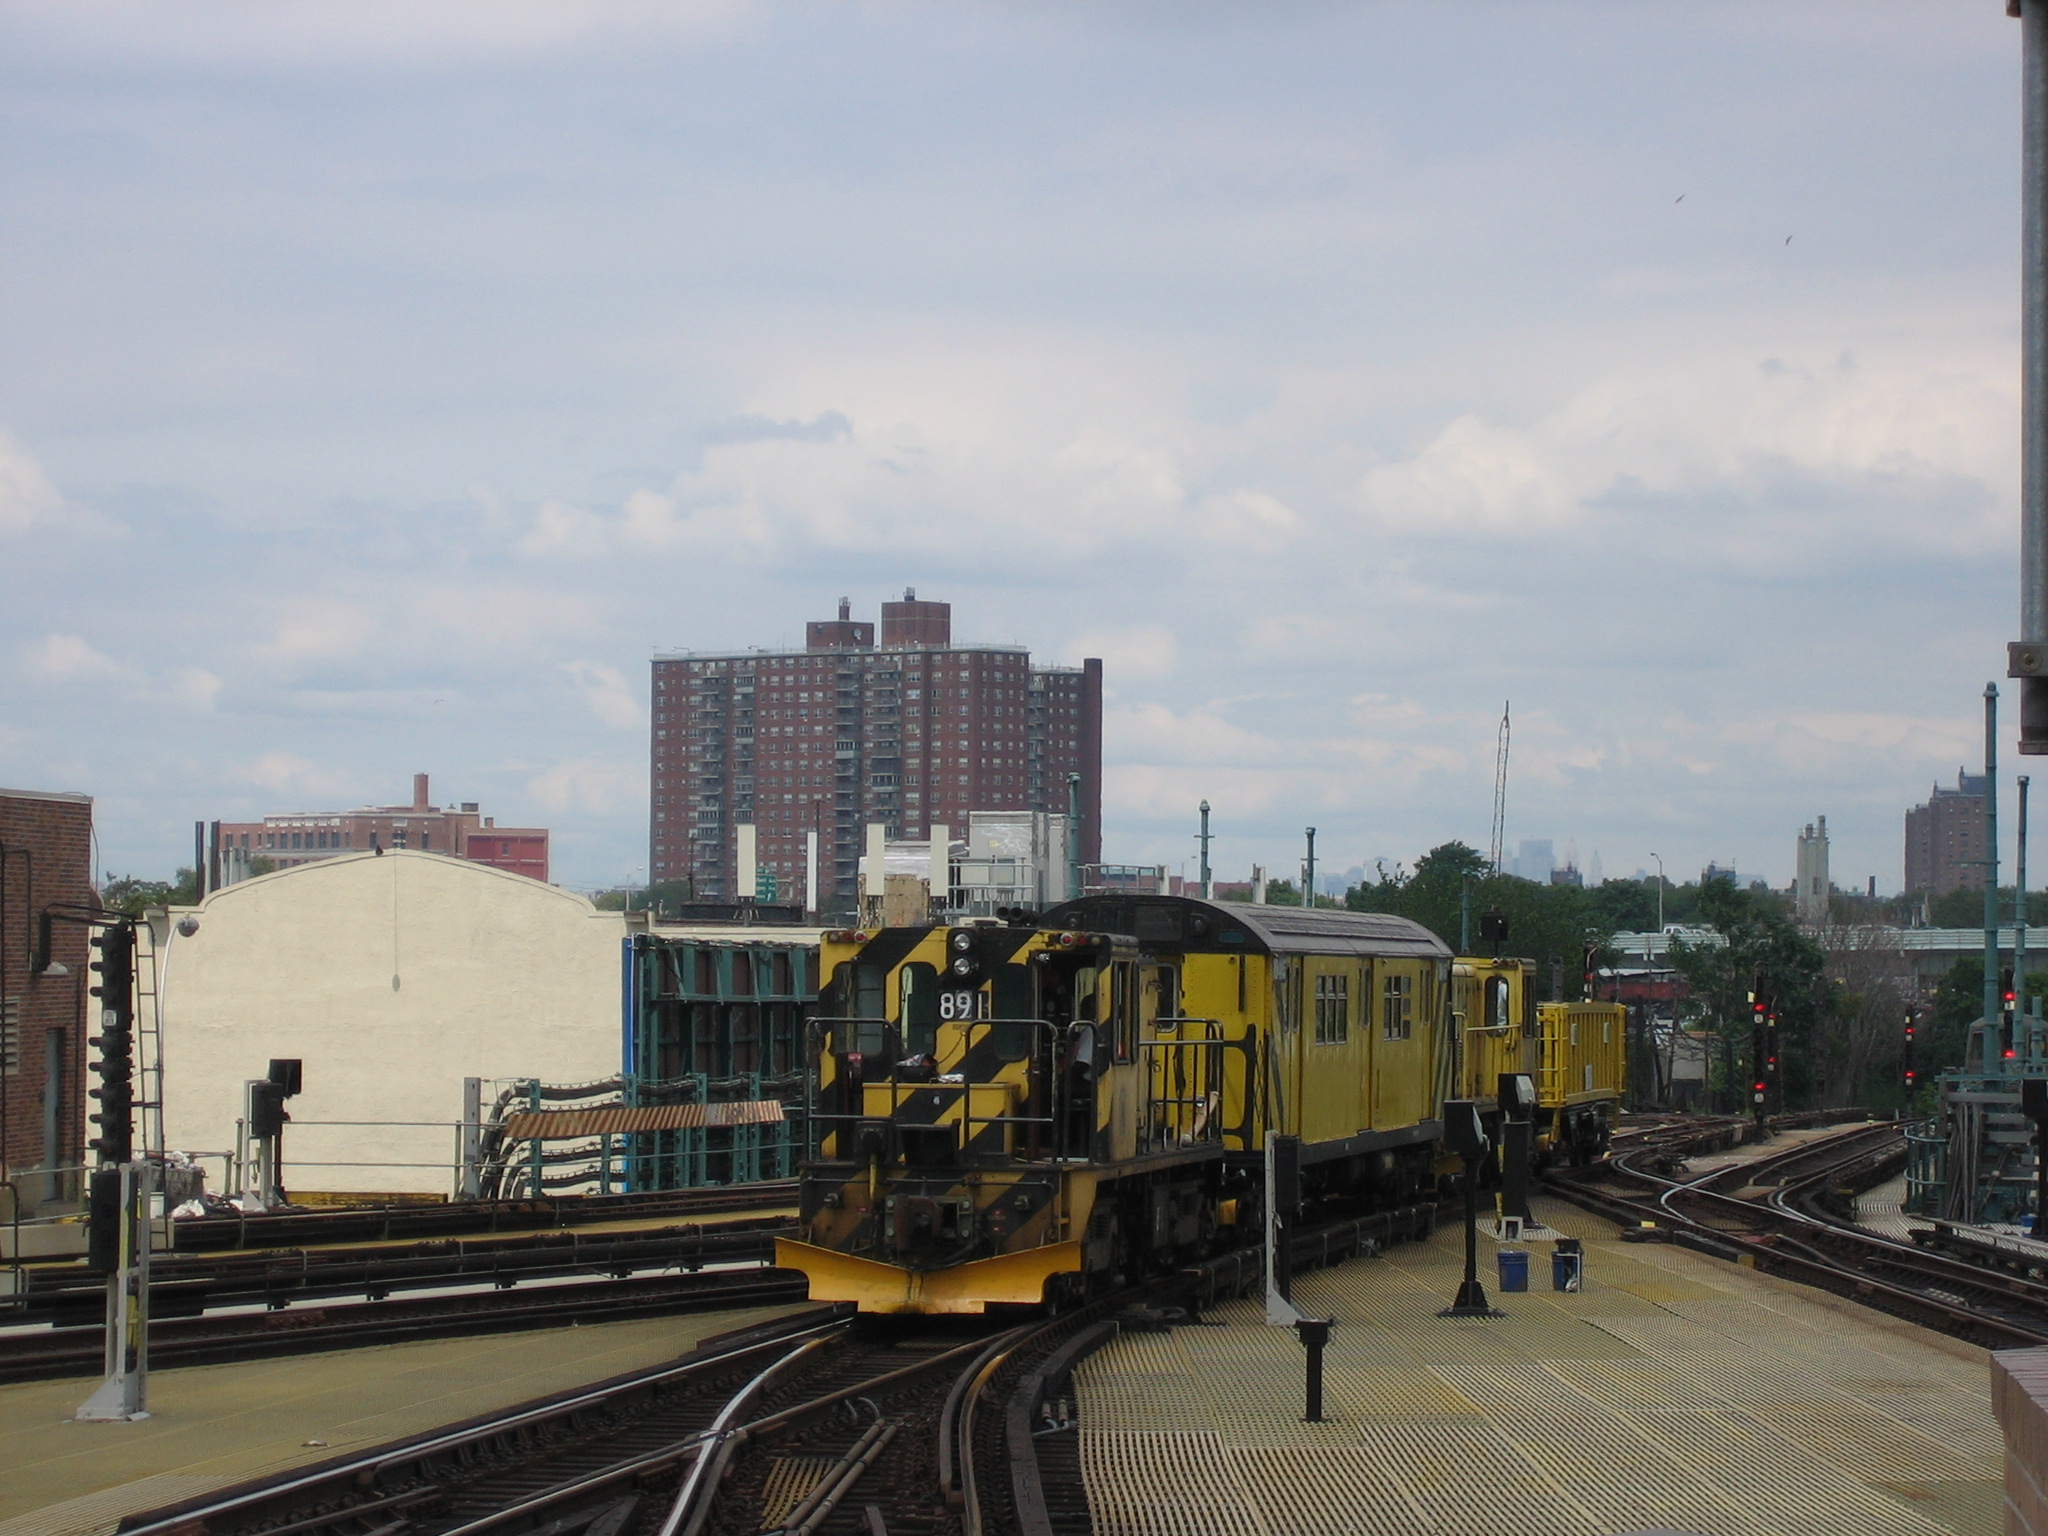 (746k, 2048x1536)<br><b>Country:</b> United States<br><b>City:</b> New York<br><b>System:</b> New York City Transit<br><b>Location:</b> Coney Island/Stillwell Avenue<br><b>Route:</b> Work Service<br><b>Car:</b> R-77 Locomotive  891 <br><b>Photo by:</b> Michael Hodurski<br><b>Date:</b> 8/4/2006<br><b>Viewed (this week/total):</b> 3 / 1139